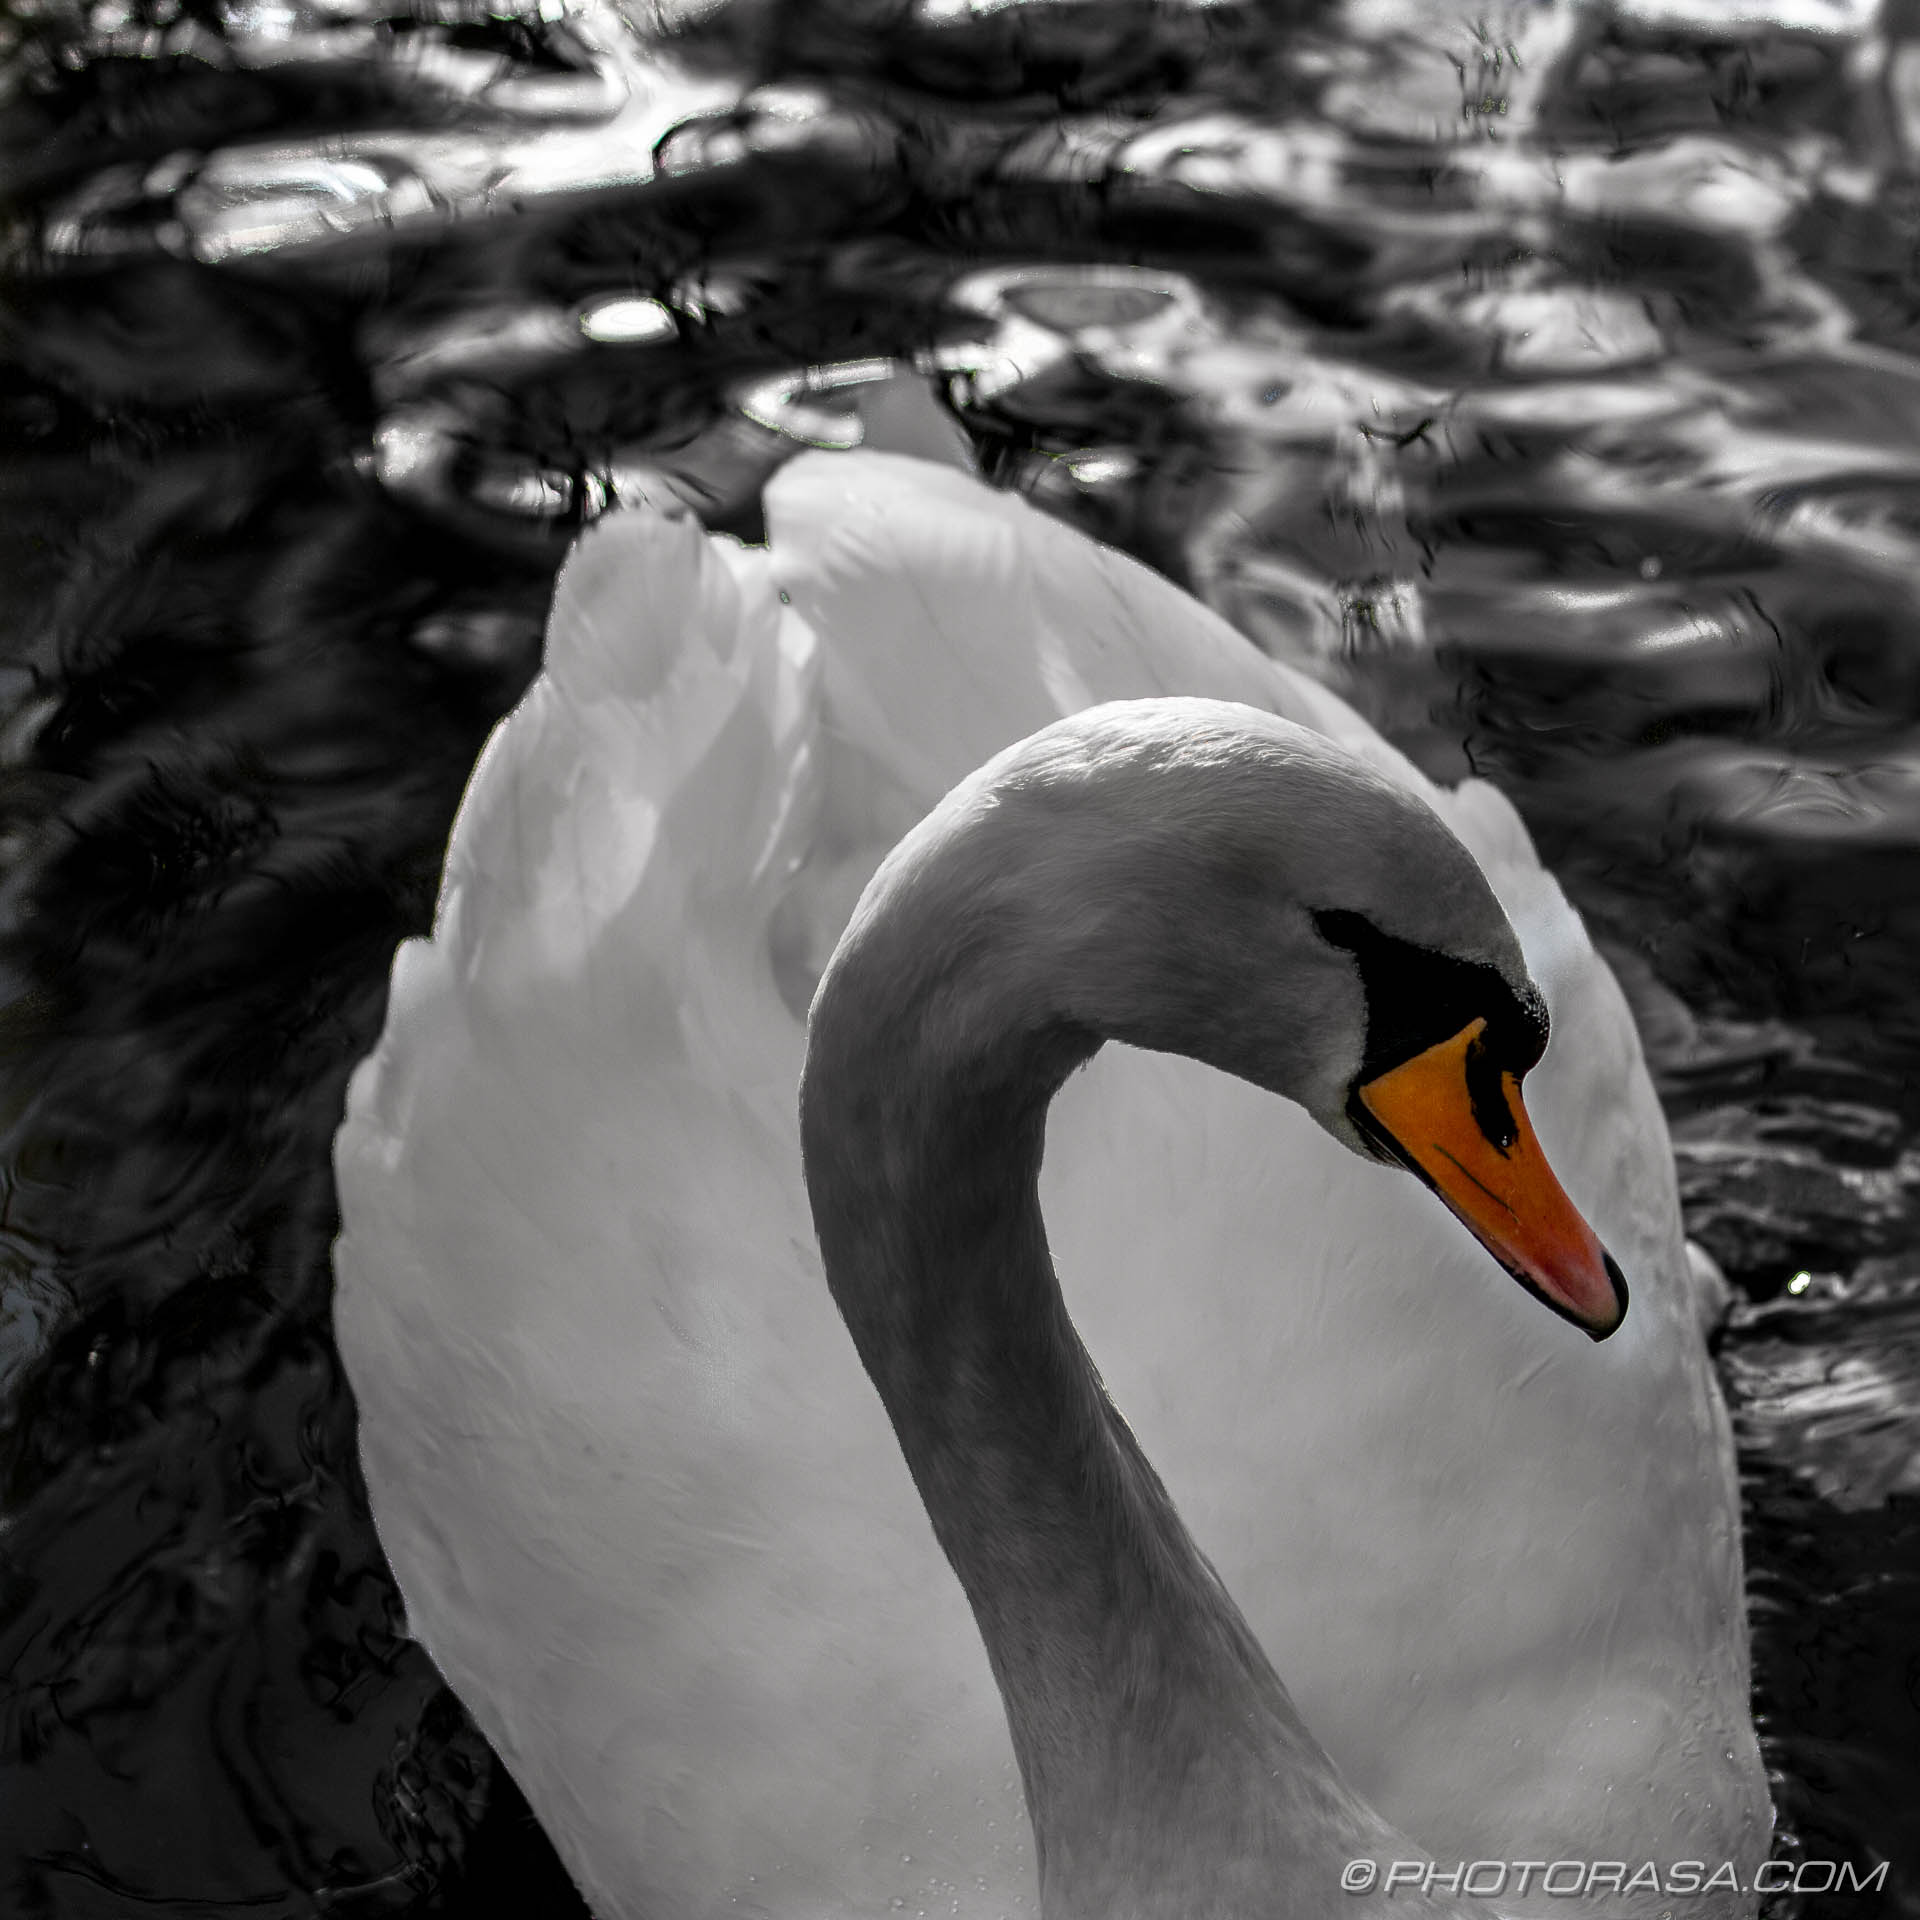 https://photorasa.com/art-swans/swan-gliding-forwards/